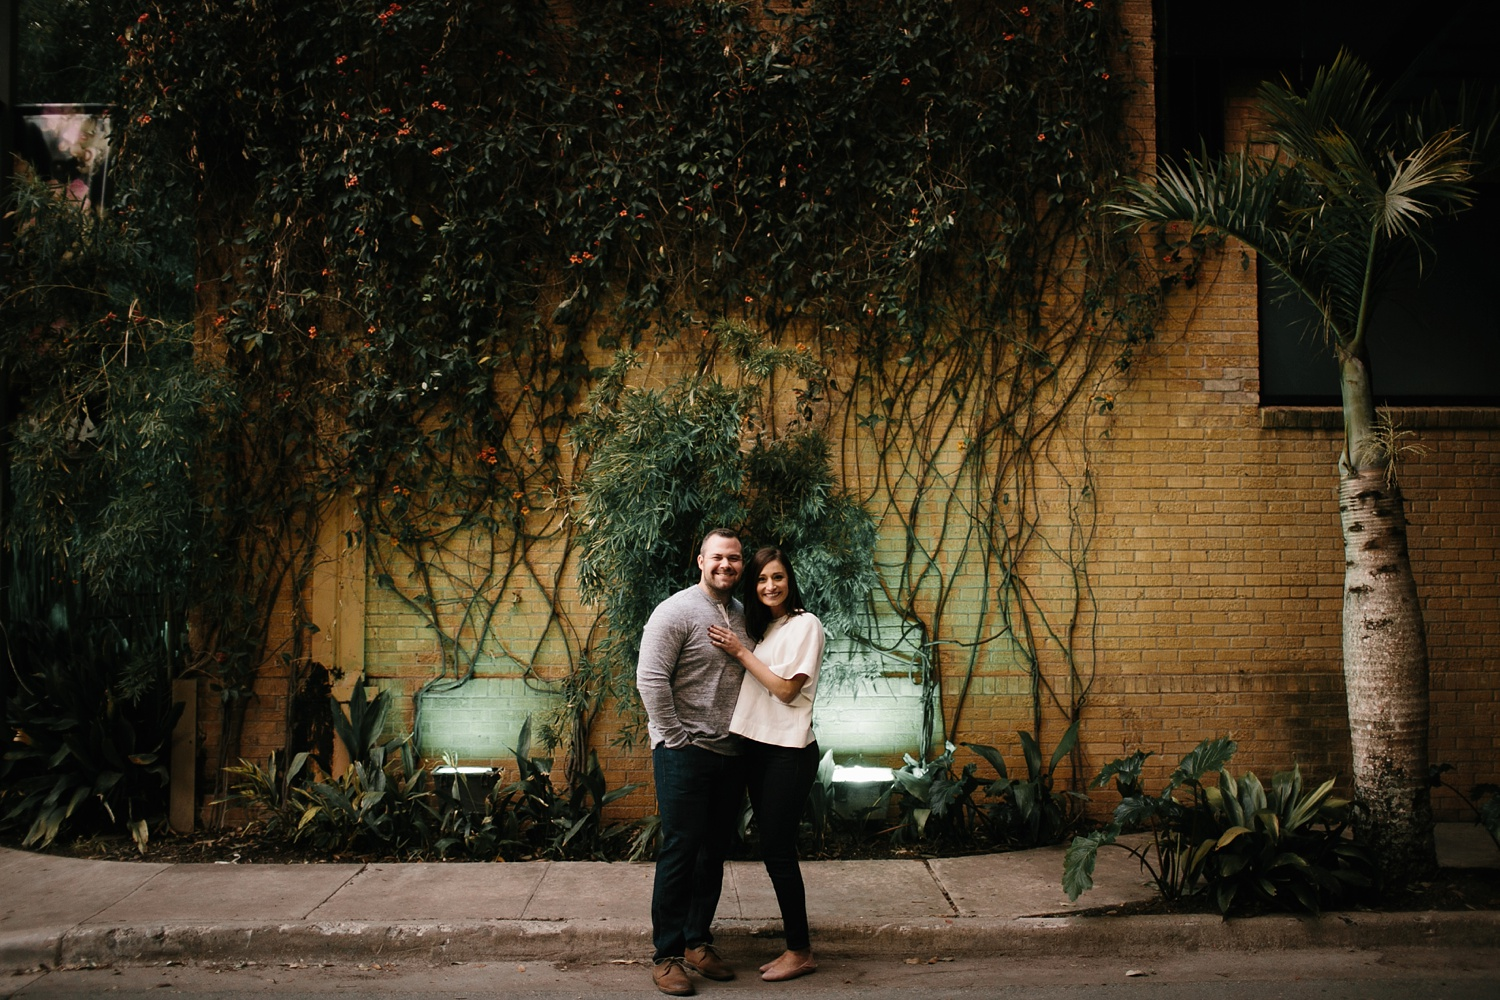 Kadee + Tyler _ a forest and city skyline engagement shoot in Dallas by North Texas Wedding Photographer Rachel Meagan Photography_45